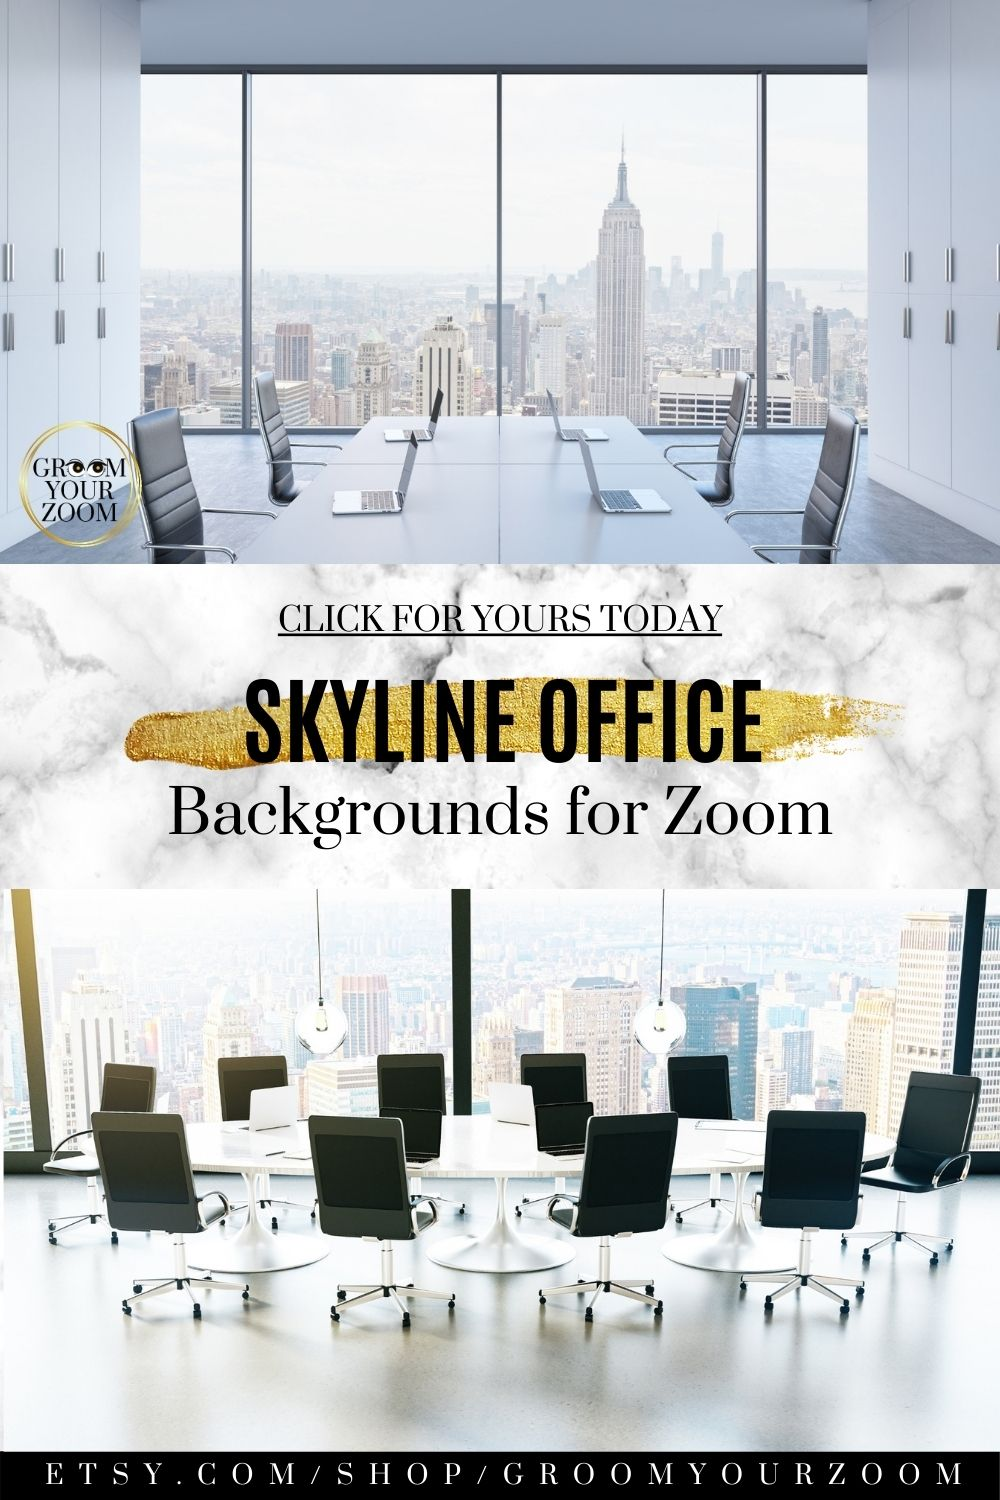 Skyline Office Zoom Background 4 Virtual Photos For Video Call Professional Background Online School Stock Photo Digital Download Office Background Background Digital Backgrounds